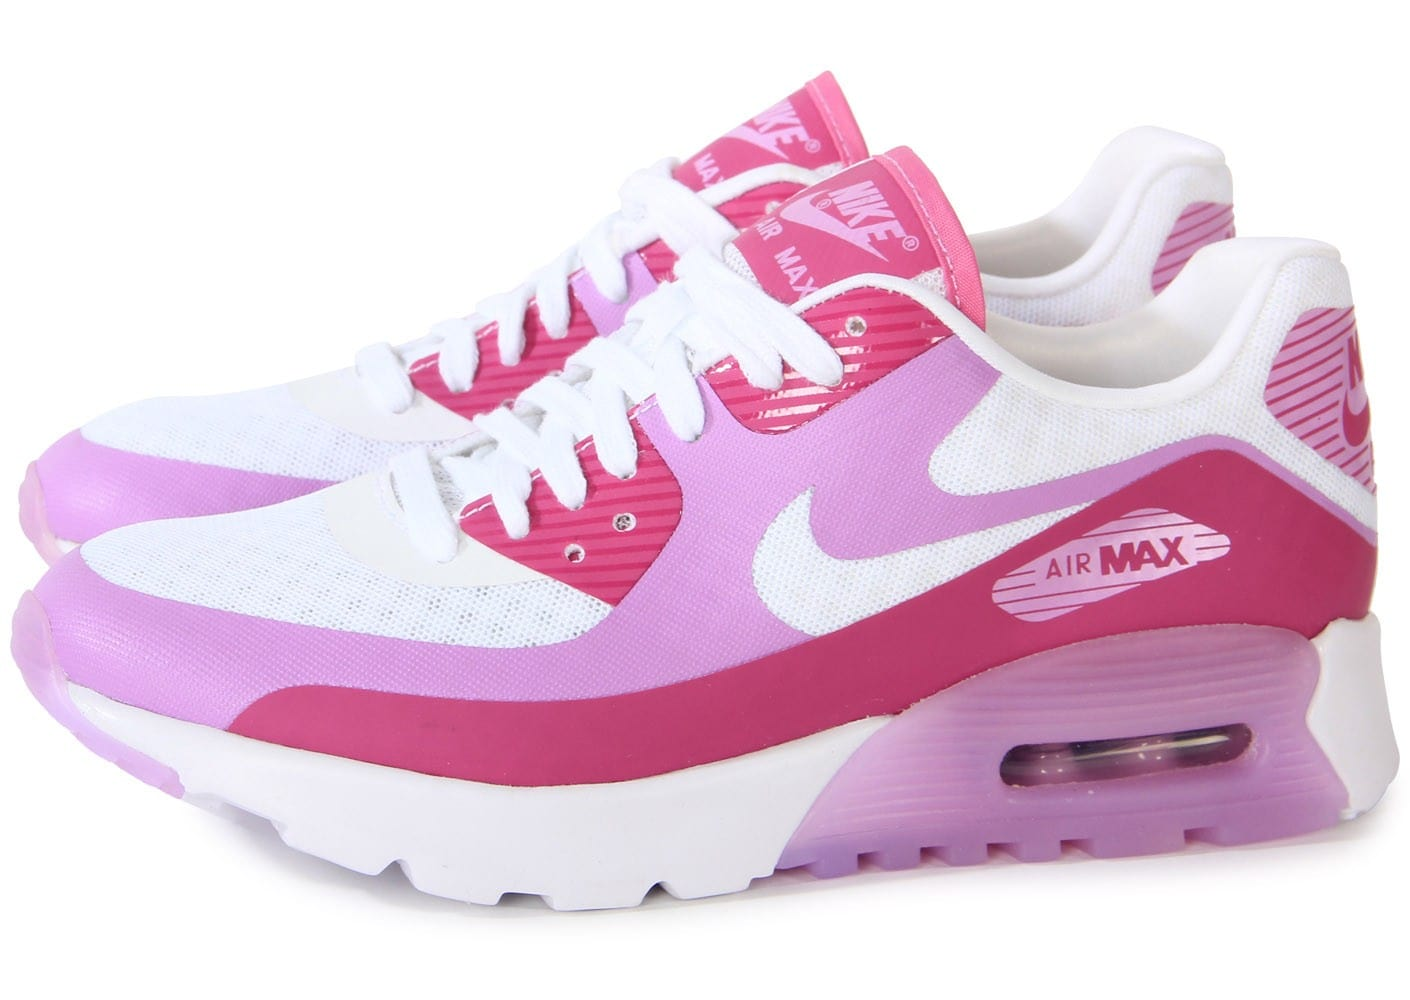 Chaussures confortables NIKE Air Max 90 BR Femme Rose